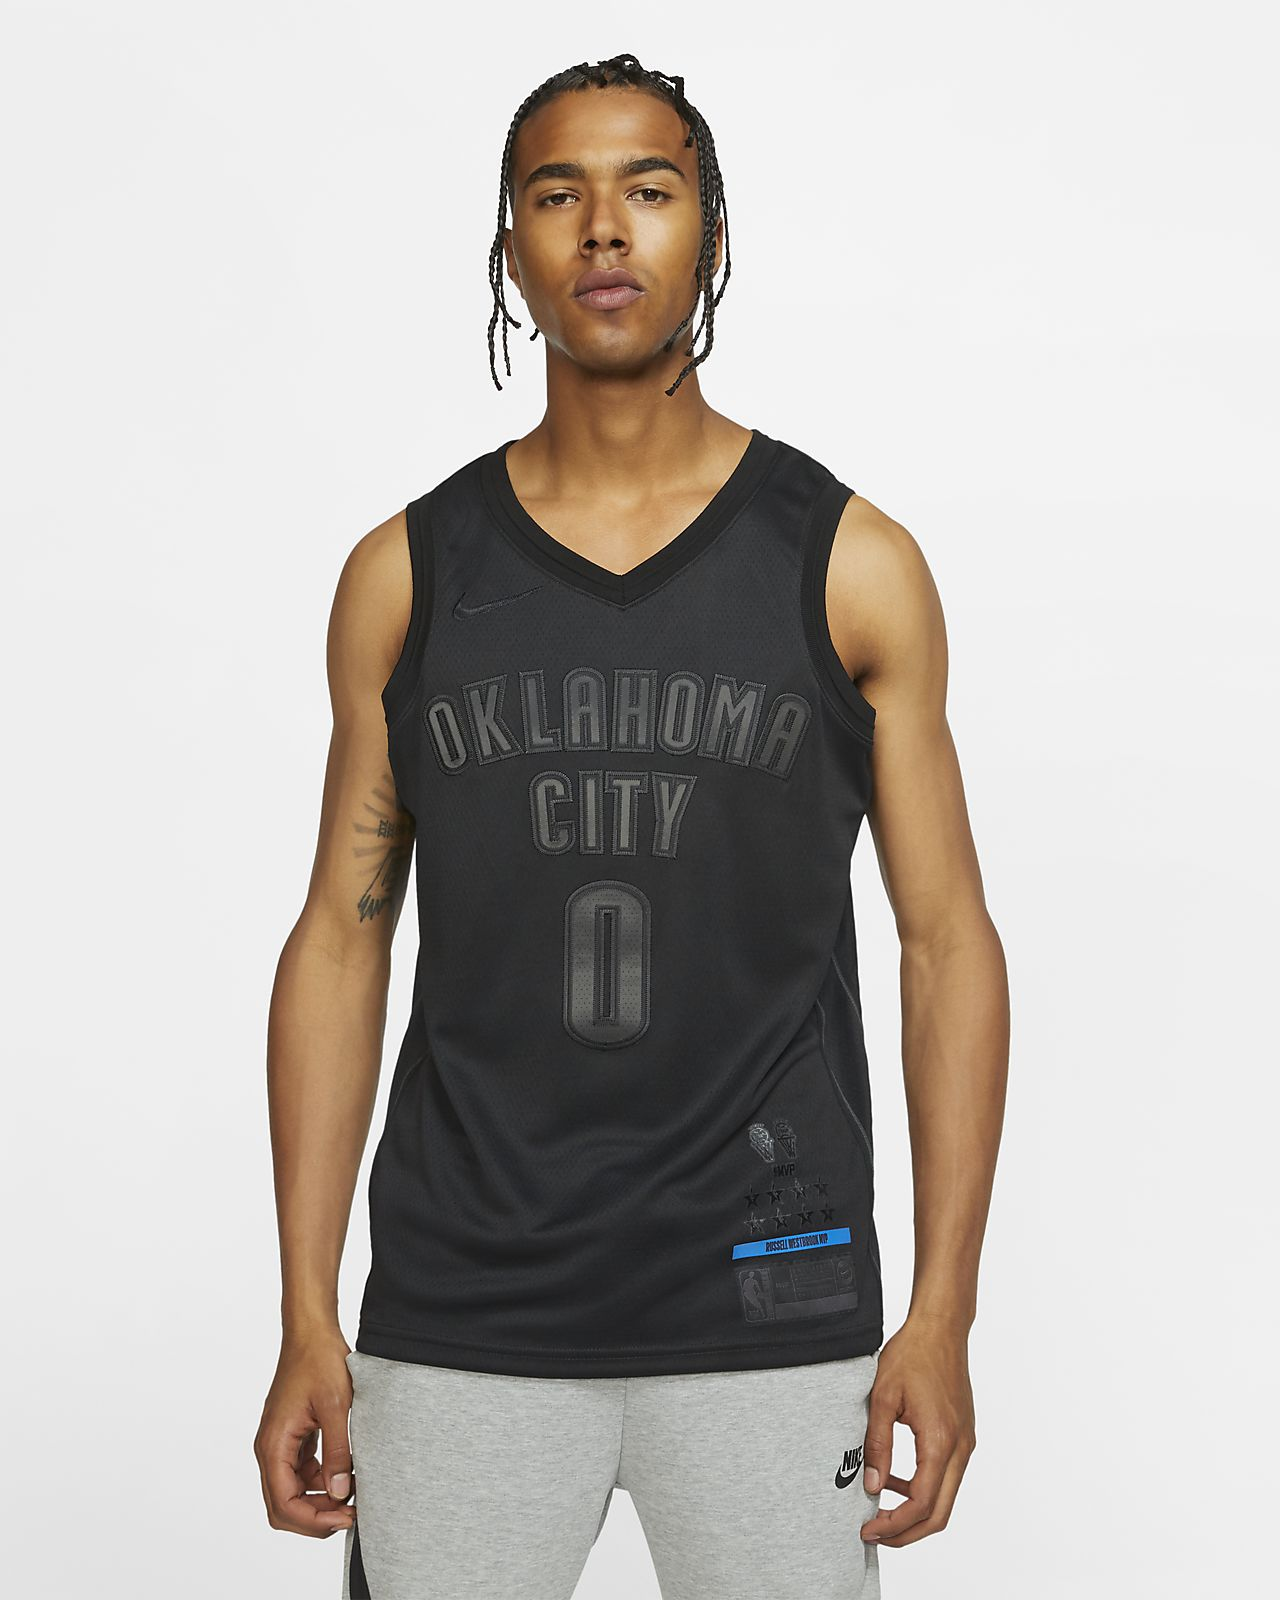 俄克拉荷马城雷霆队 (Russell Westbrook) MVP Swingman Nike NBA Connected Jersey 男子球衣